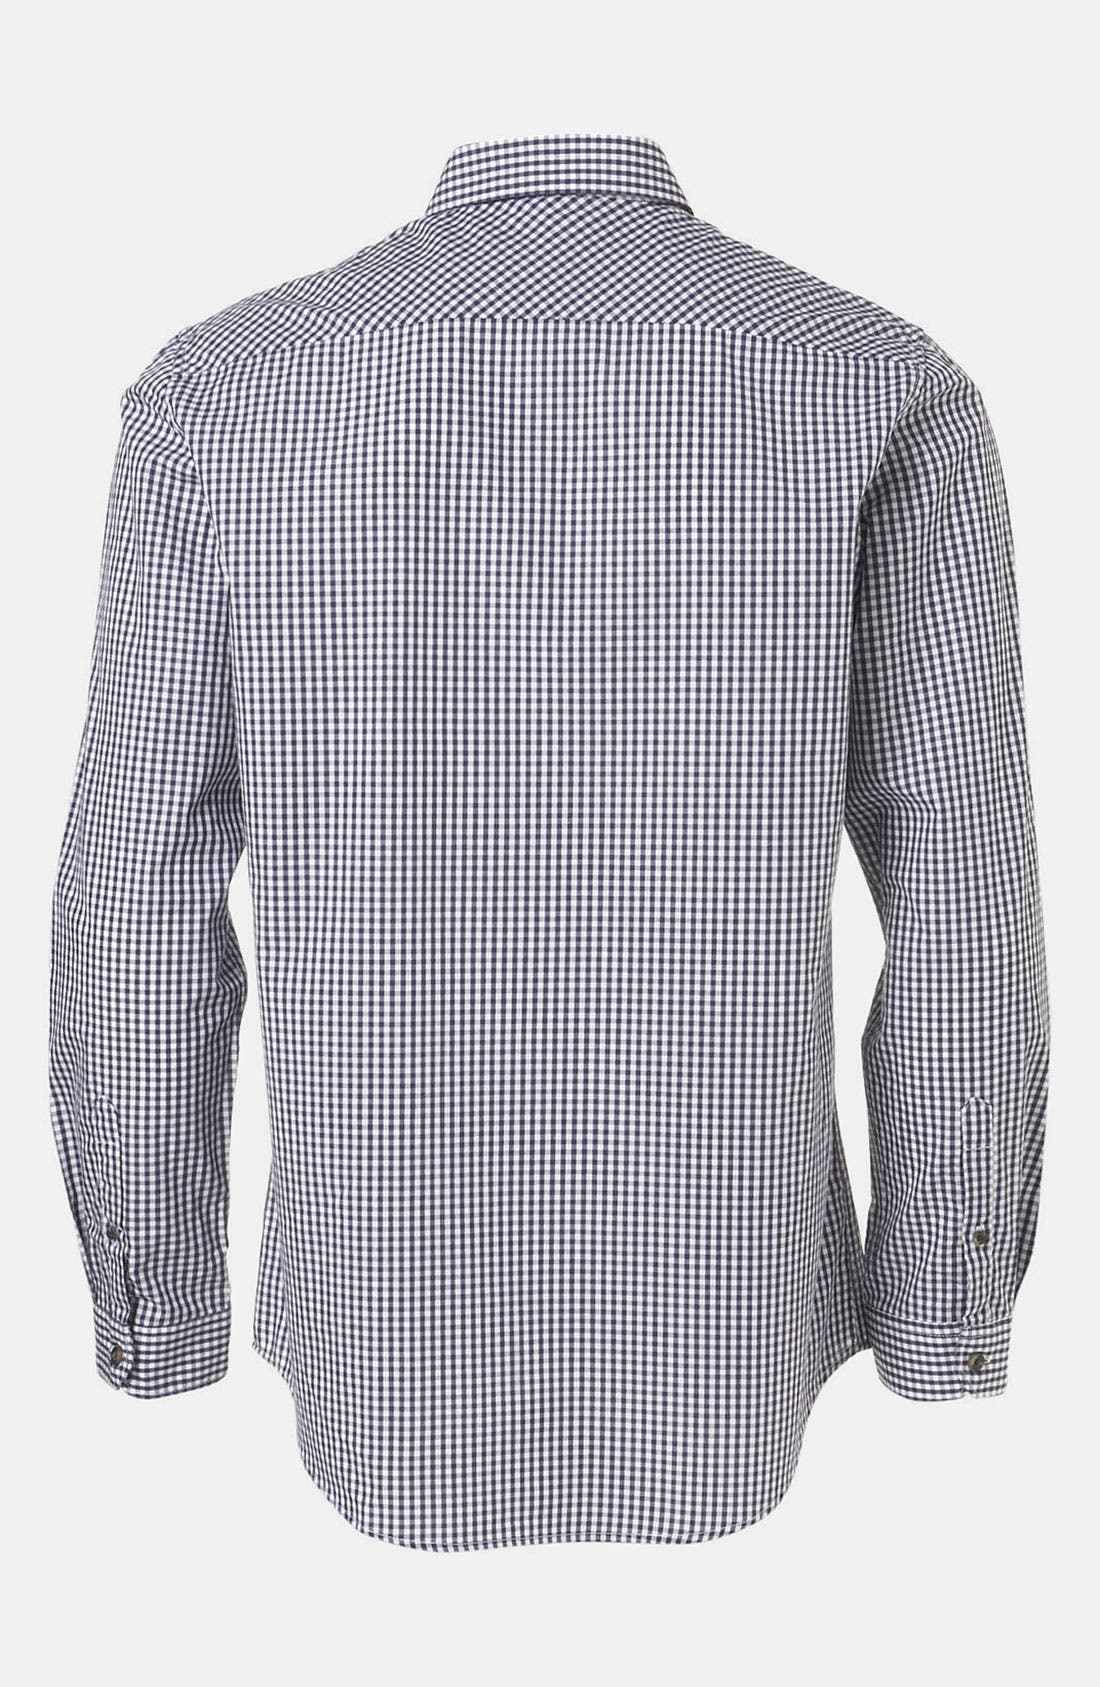 Alternate Image 2  - Topman Extra Trim Gingham Check Shirt